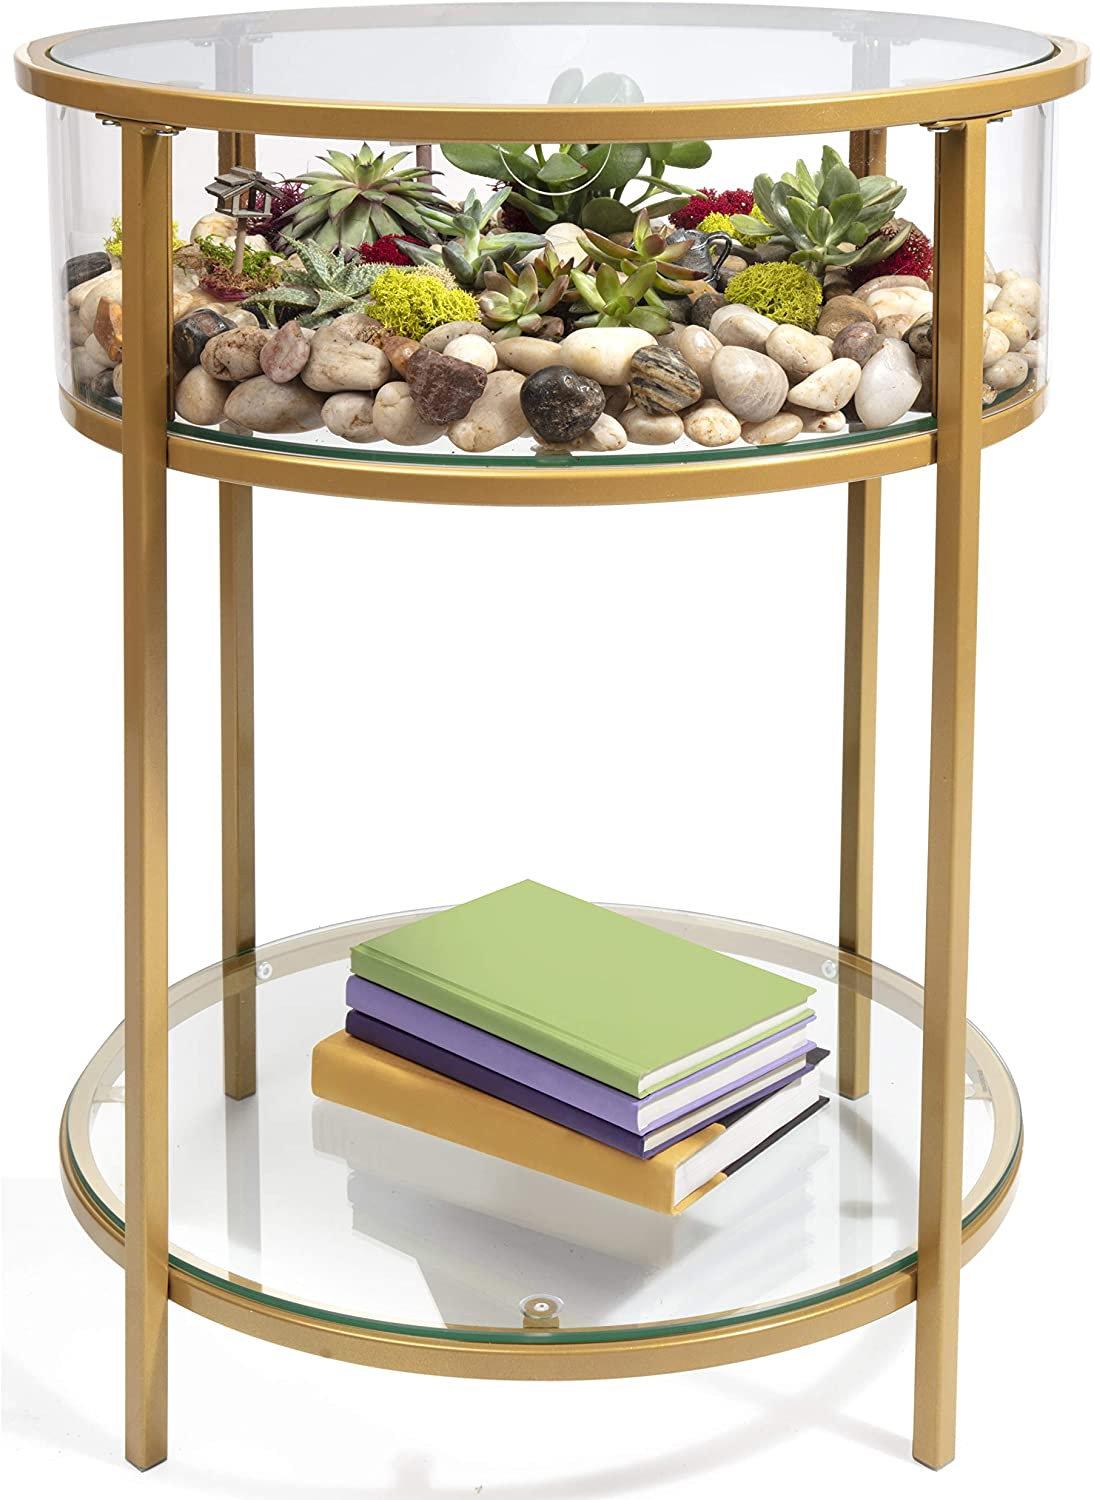 "Round Terrarium Display End Table with Reinforced Glass in Gold Iron- 20"" Diameter, 26.5"" Height"